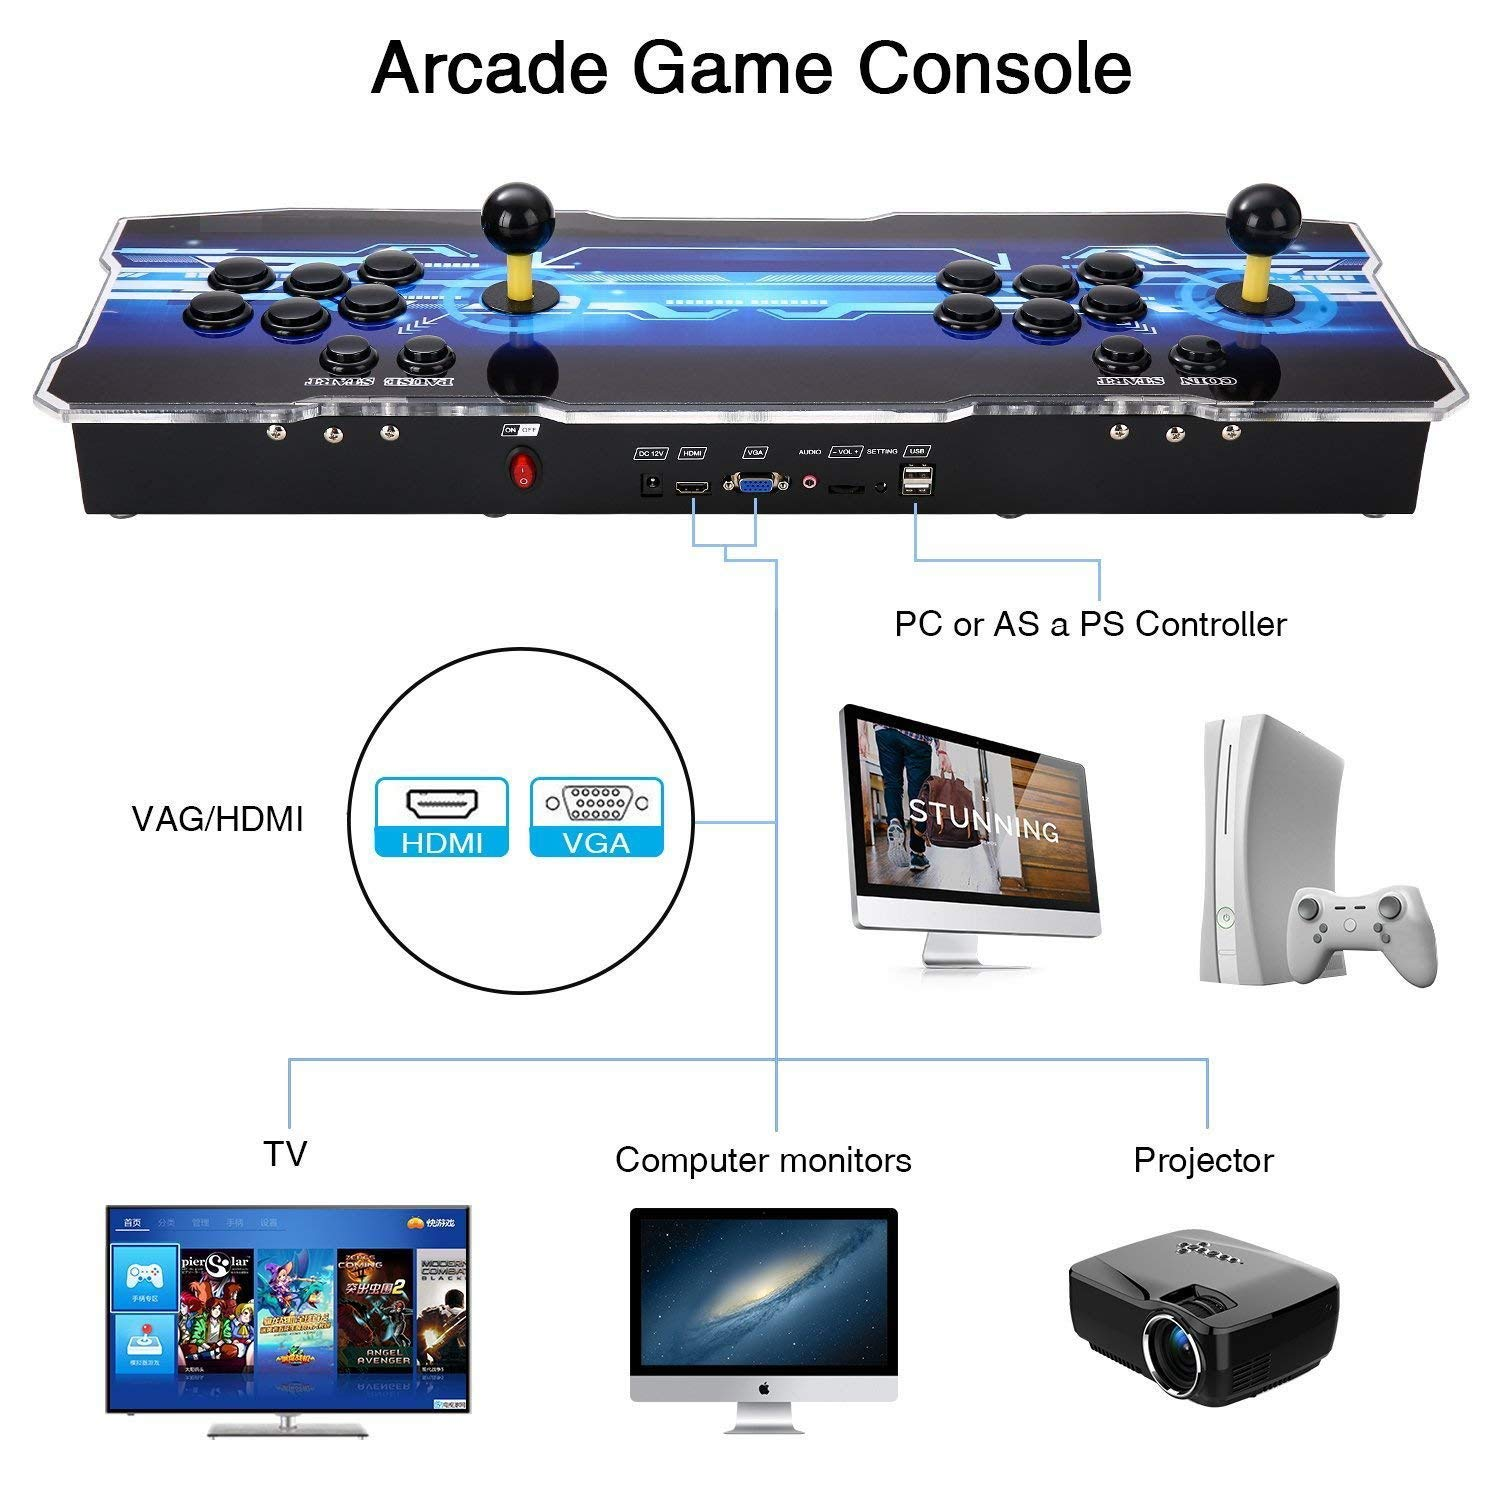 SeeKool Newest 3D Pandora X Arcade Game Console, 1920x1080 Full HD 4 Players Max Arcade Machine with 2200 Games, Support Extended TF Card& USB Disk to Enjoy More Games PC / Laptop / TV / PS3 by SeeKool (Image #3)